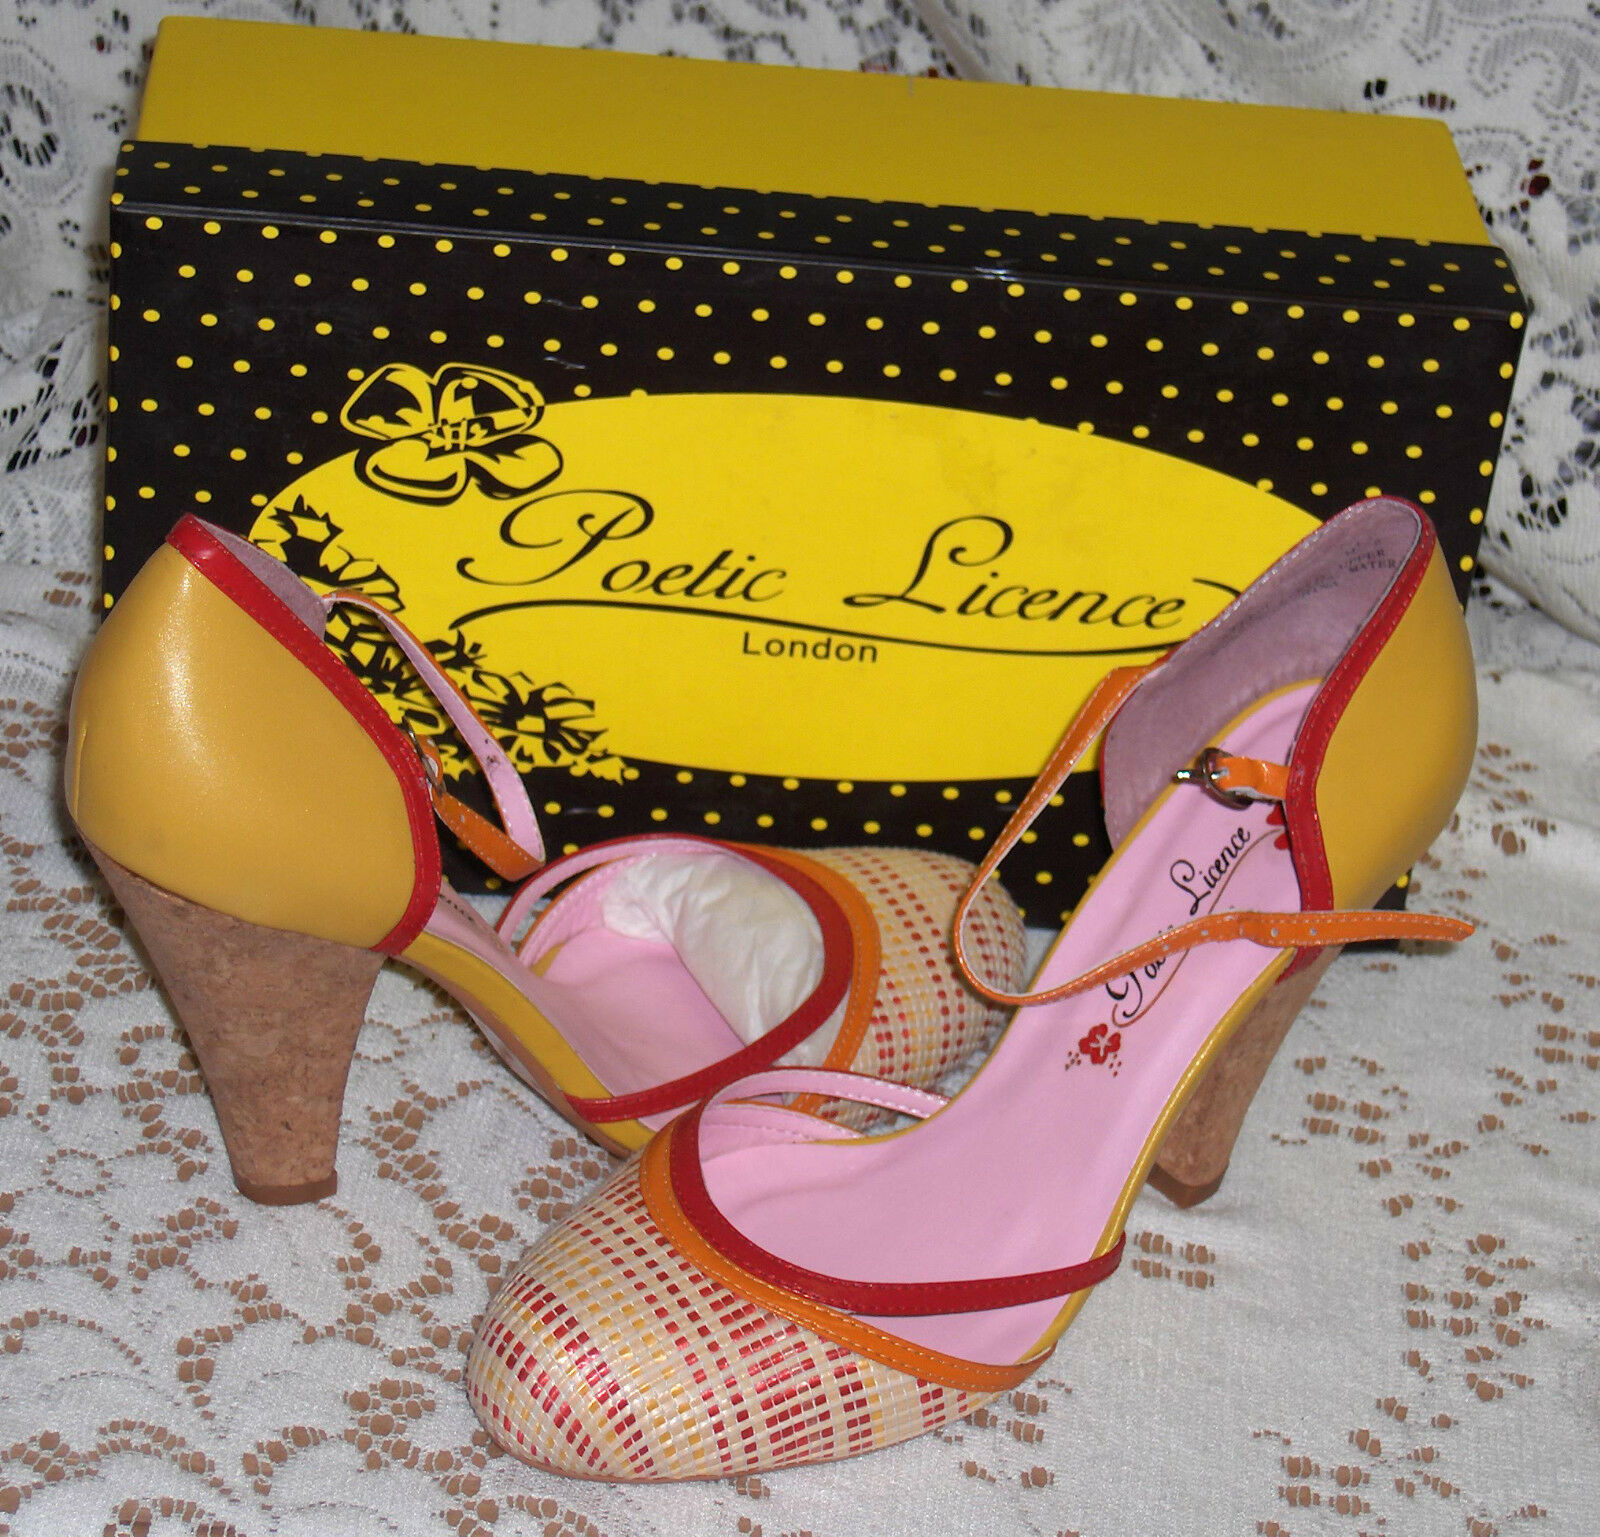 IRREGULAR CHOICE POETIC LICENCE LONDON HOPEFUL YELLOW RED SHOES 8.5 STRAPPY